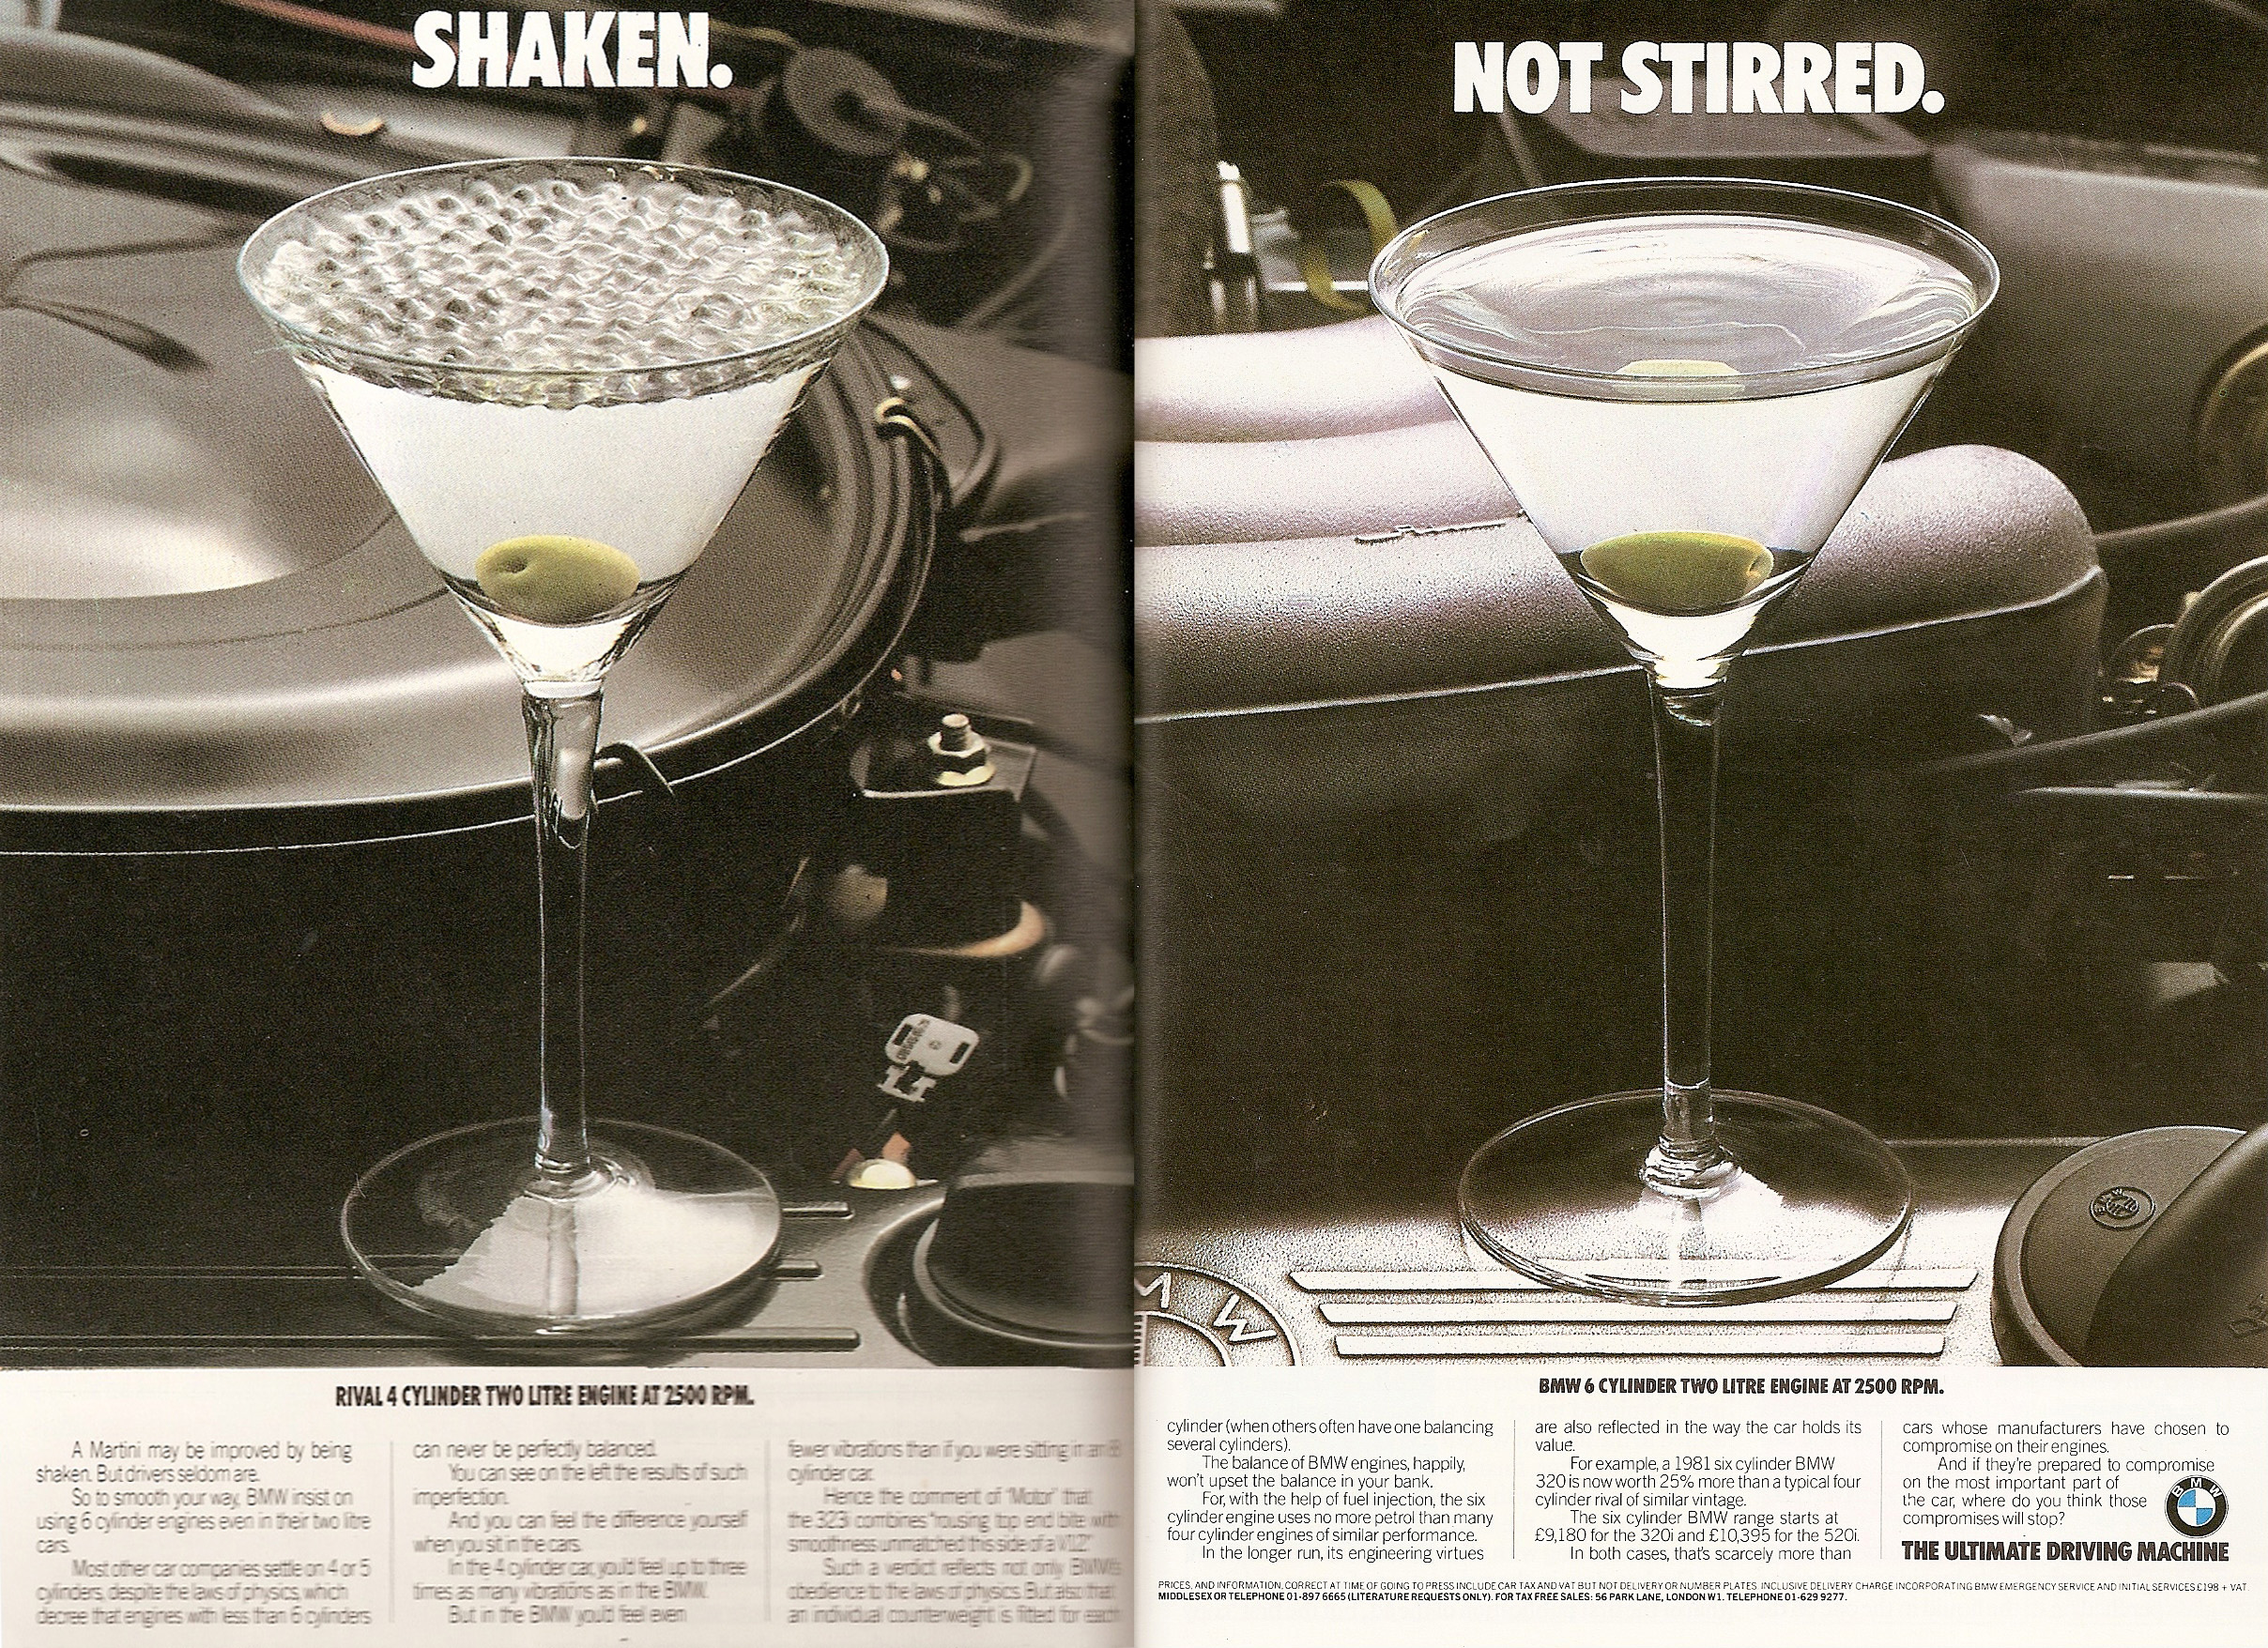 Shaken not stirred final copy